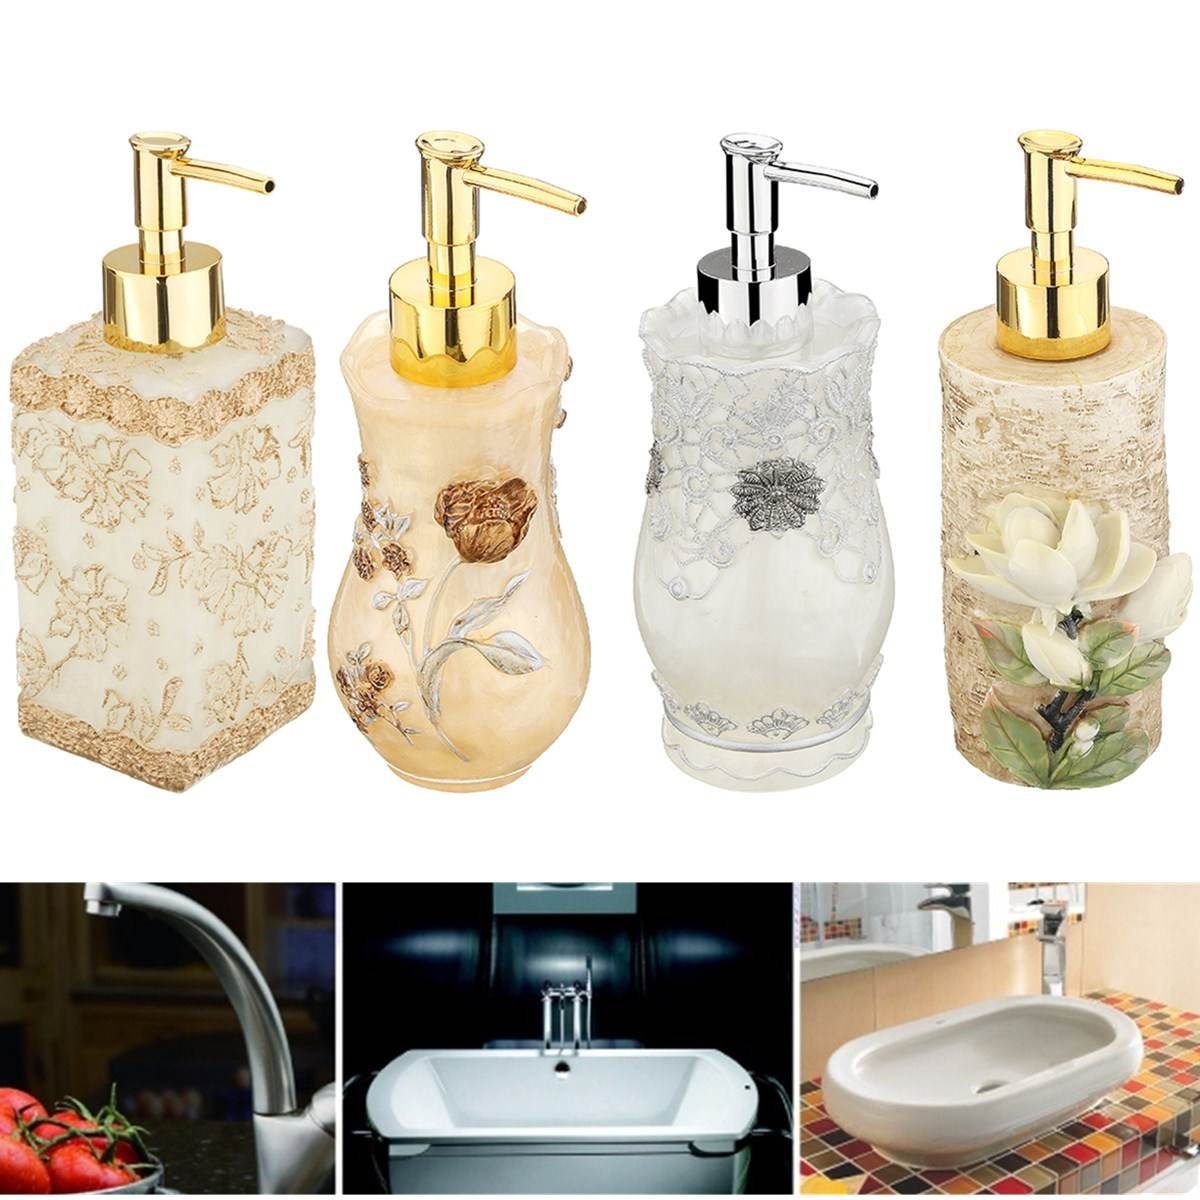 300ml-resin-hand-sanitizer-dispenser-for-home